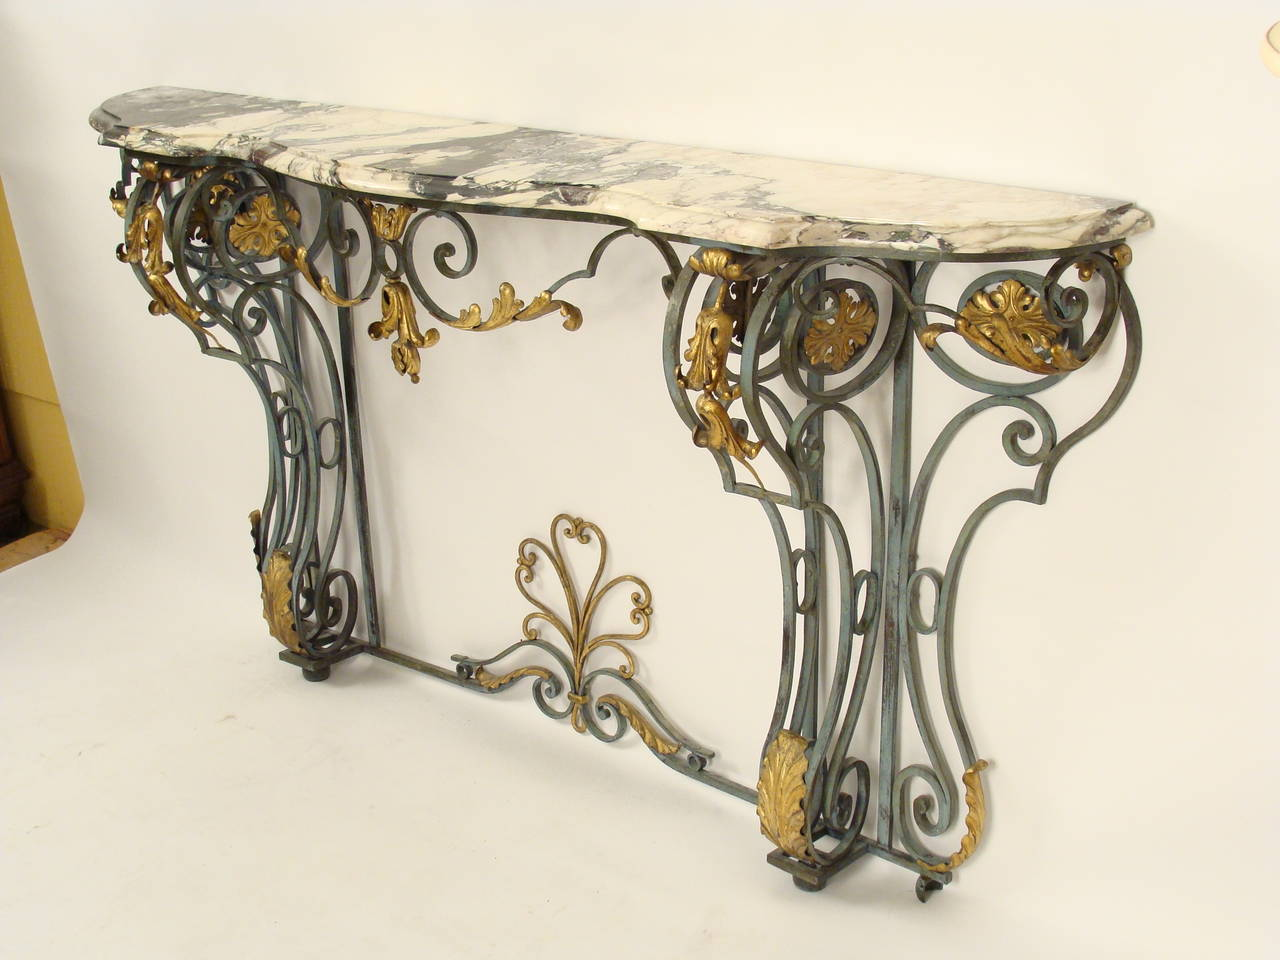 Painted And Gilt Wrought Iron Console Table At 1stdibs